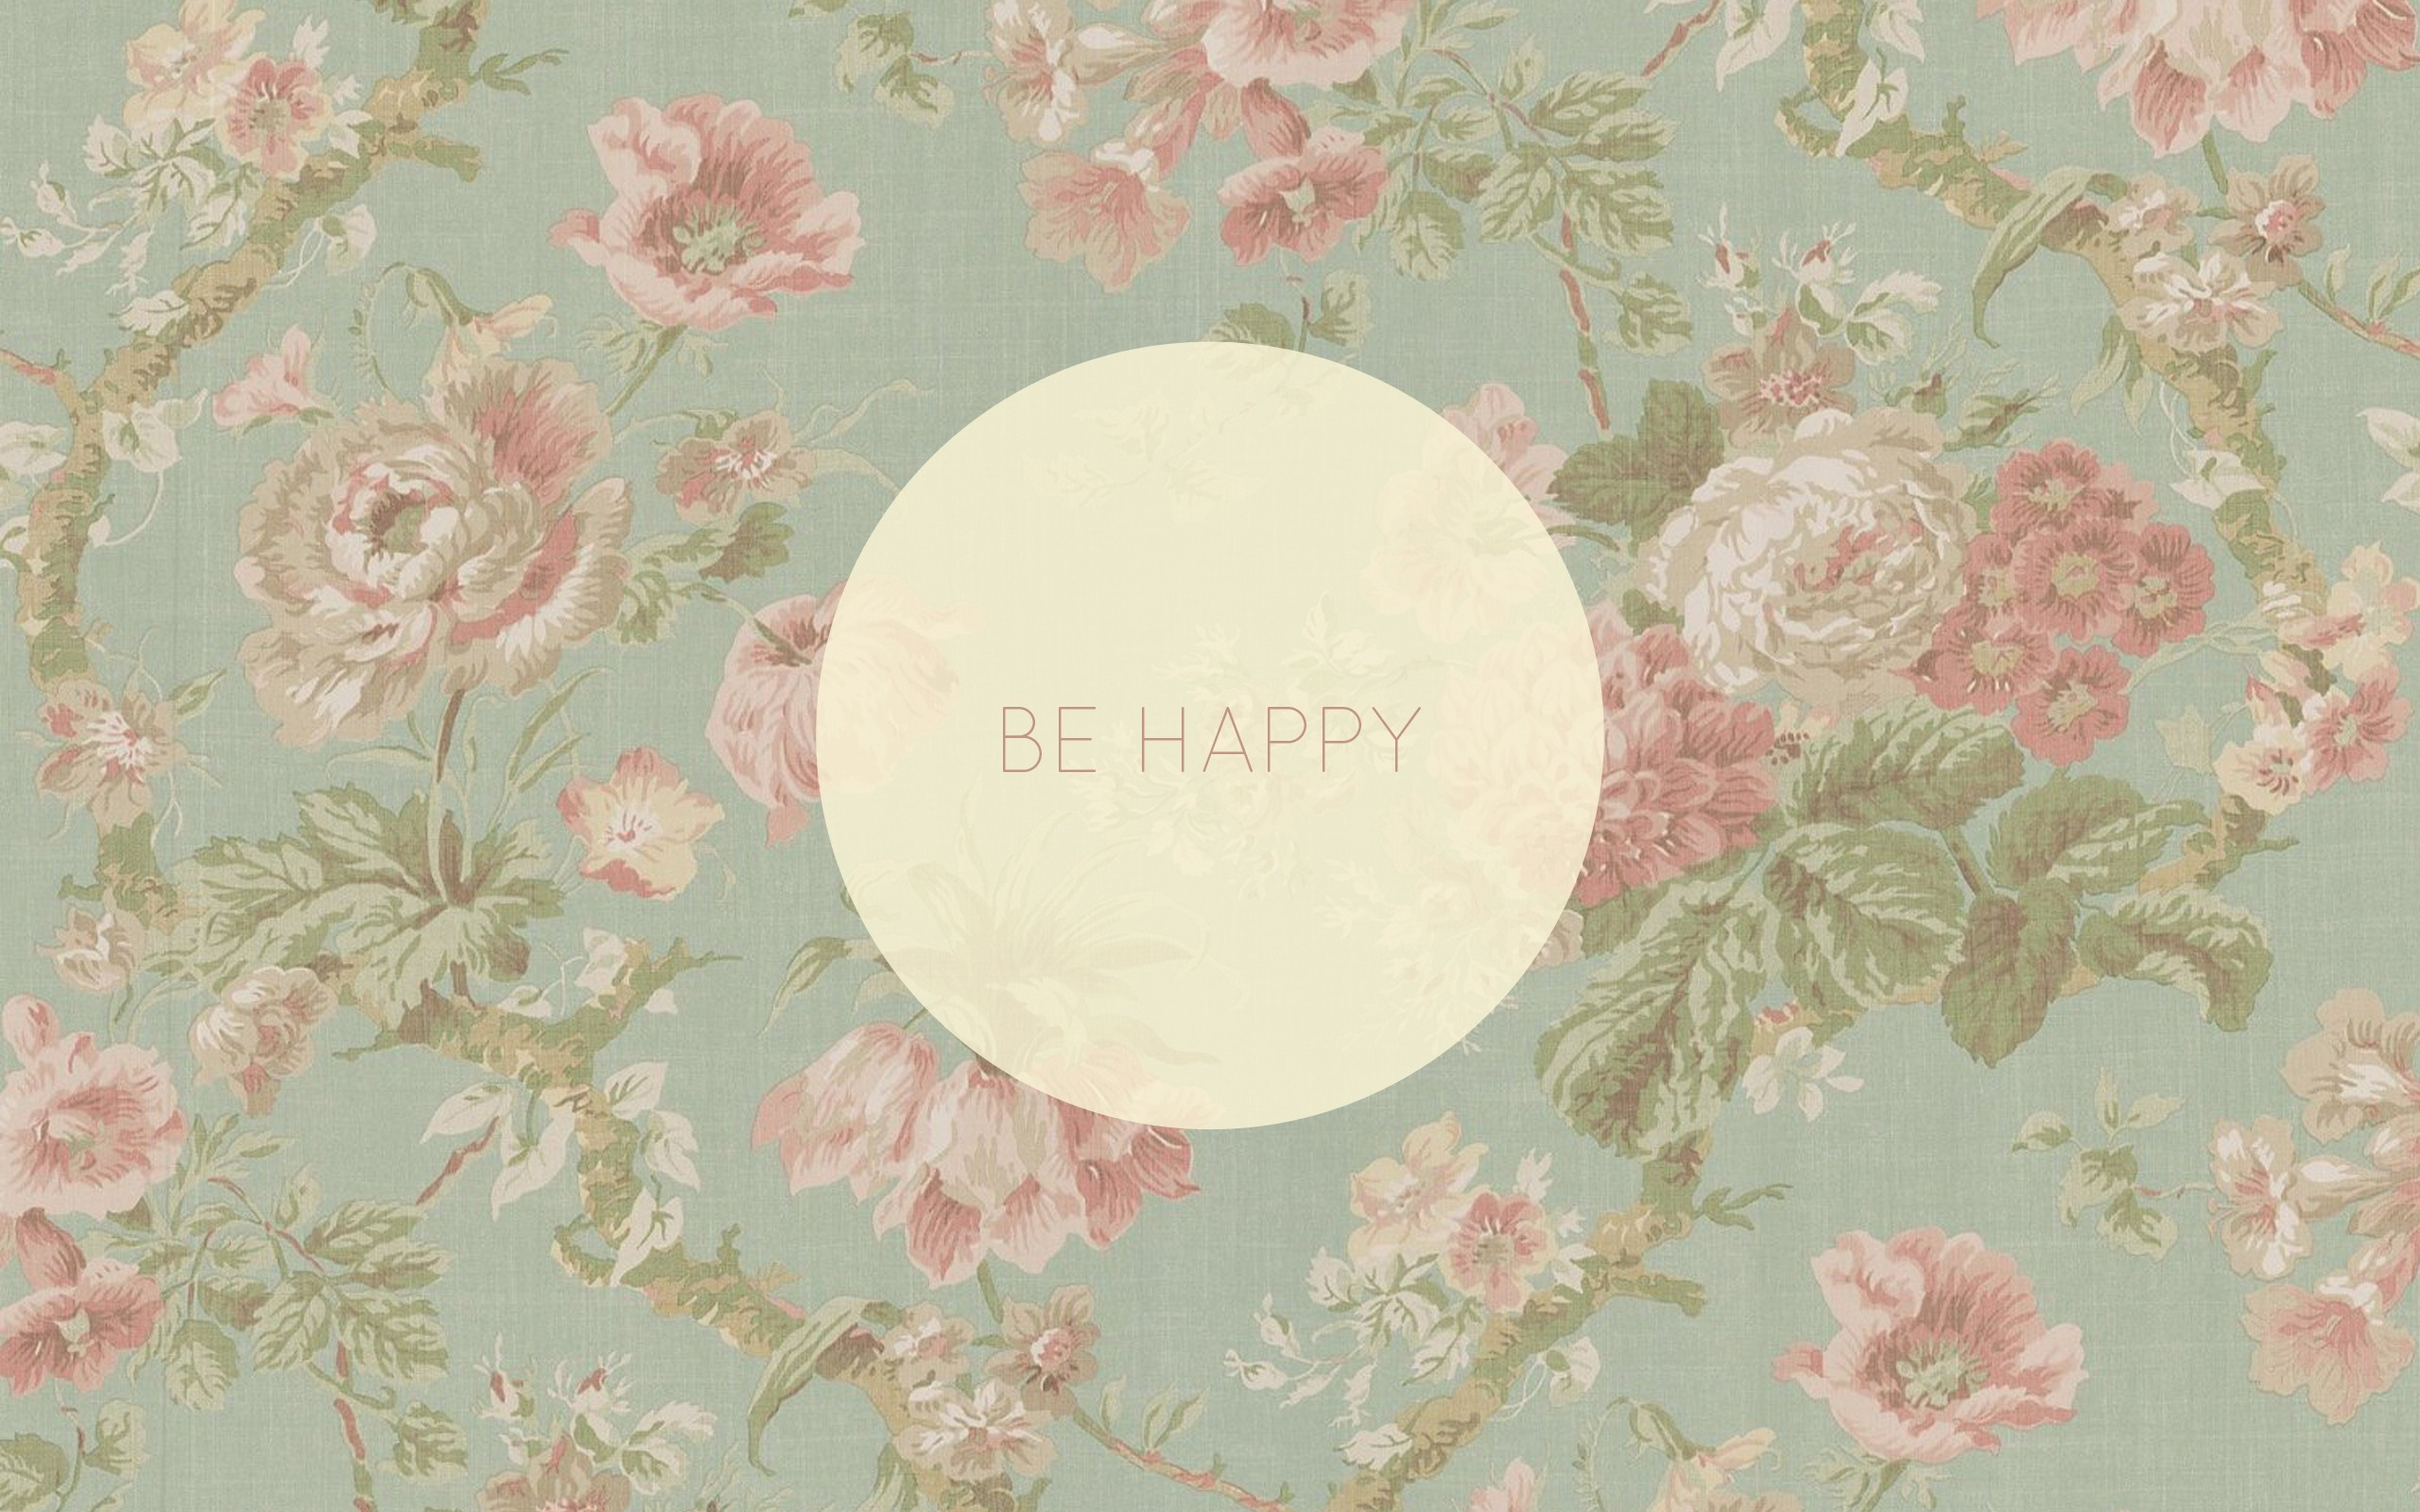 Home Cute Wallpaper Tumblr For Iphone Wallpapers: 56+ Tumblr Backgrounds Vintage ·① Download Free Awesome